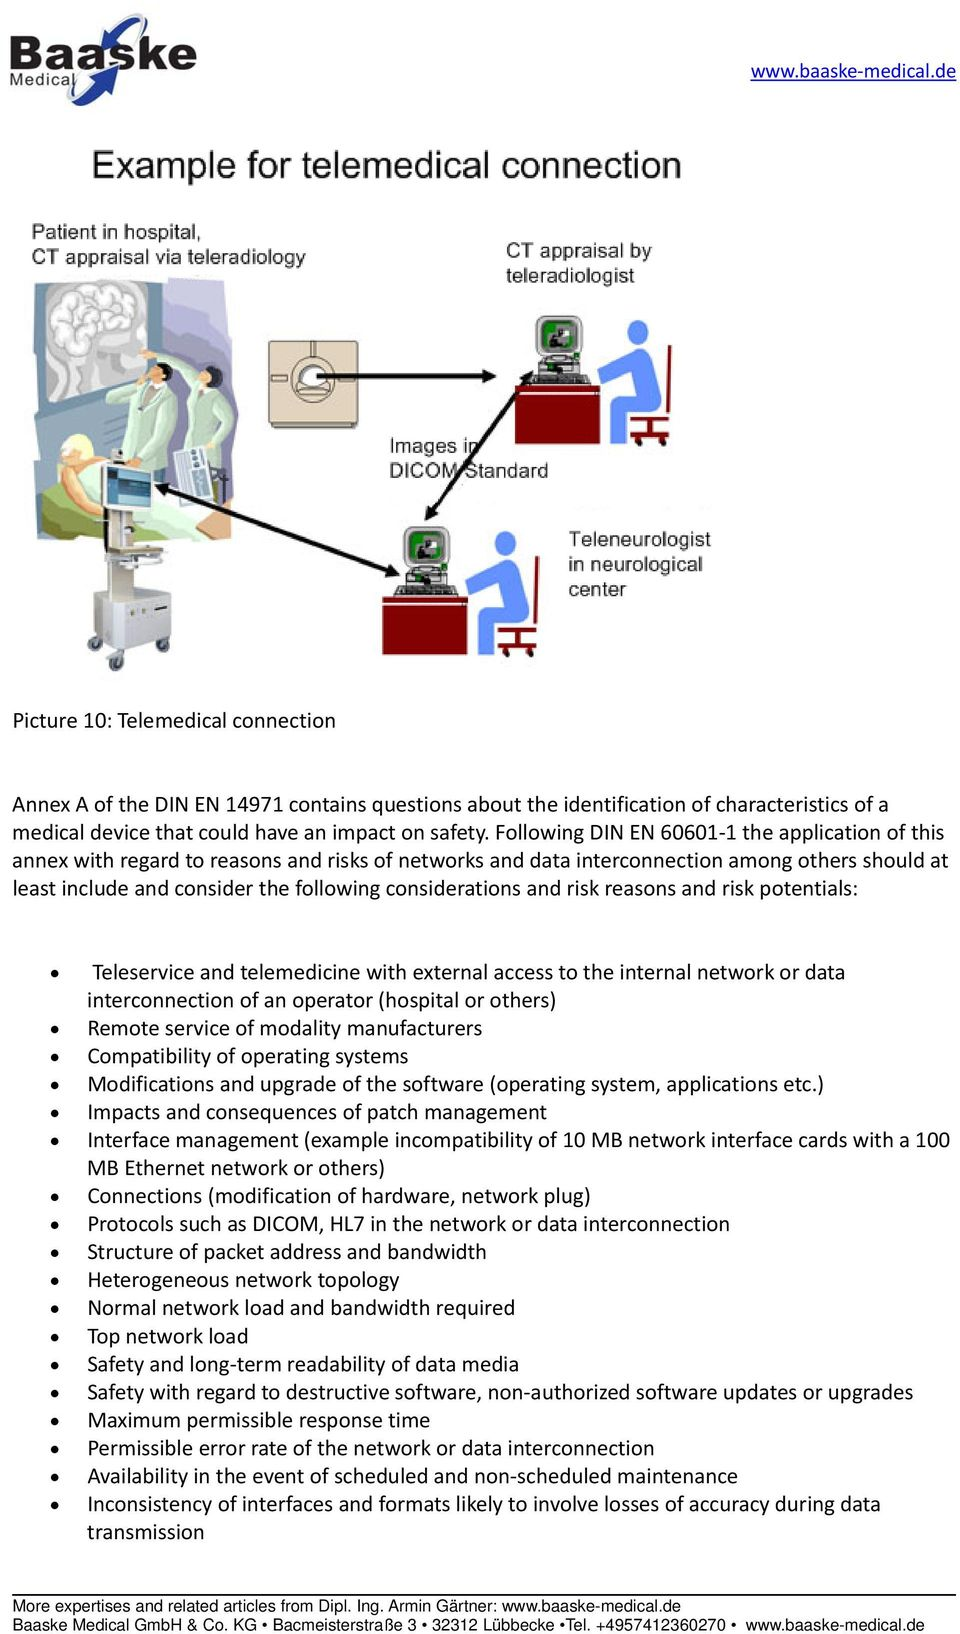 considerations and risk reasons and risk potentials: Teleservice and telemedicine with external access to the internal network or data interconnection of an operator (hospital or others) Remote